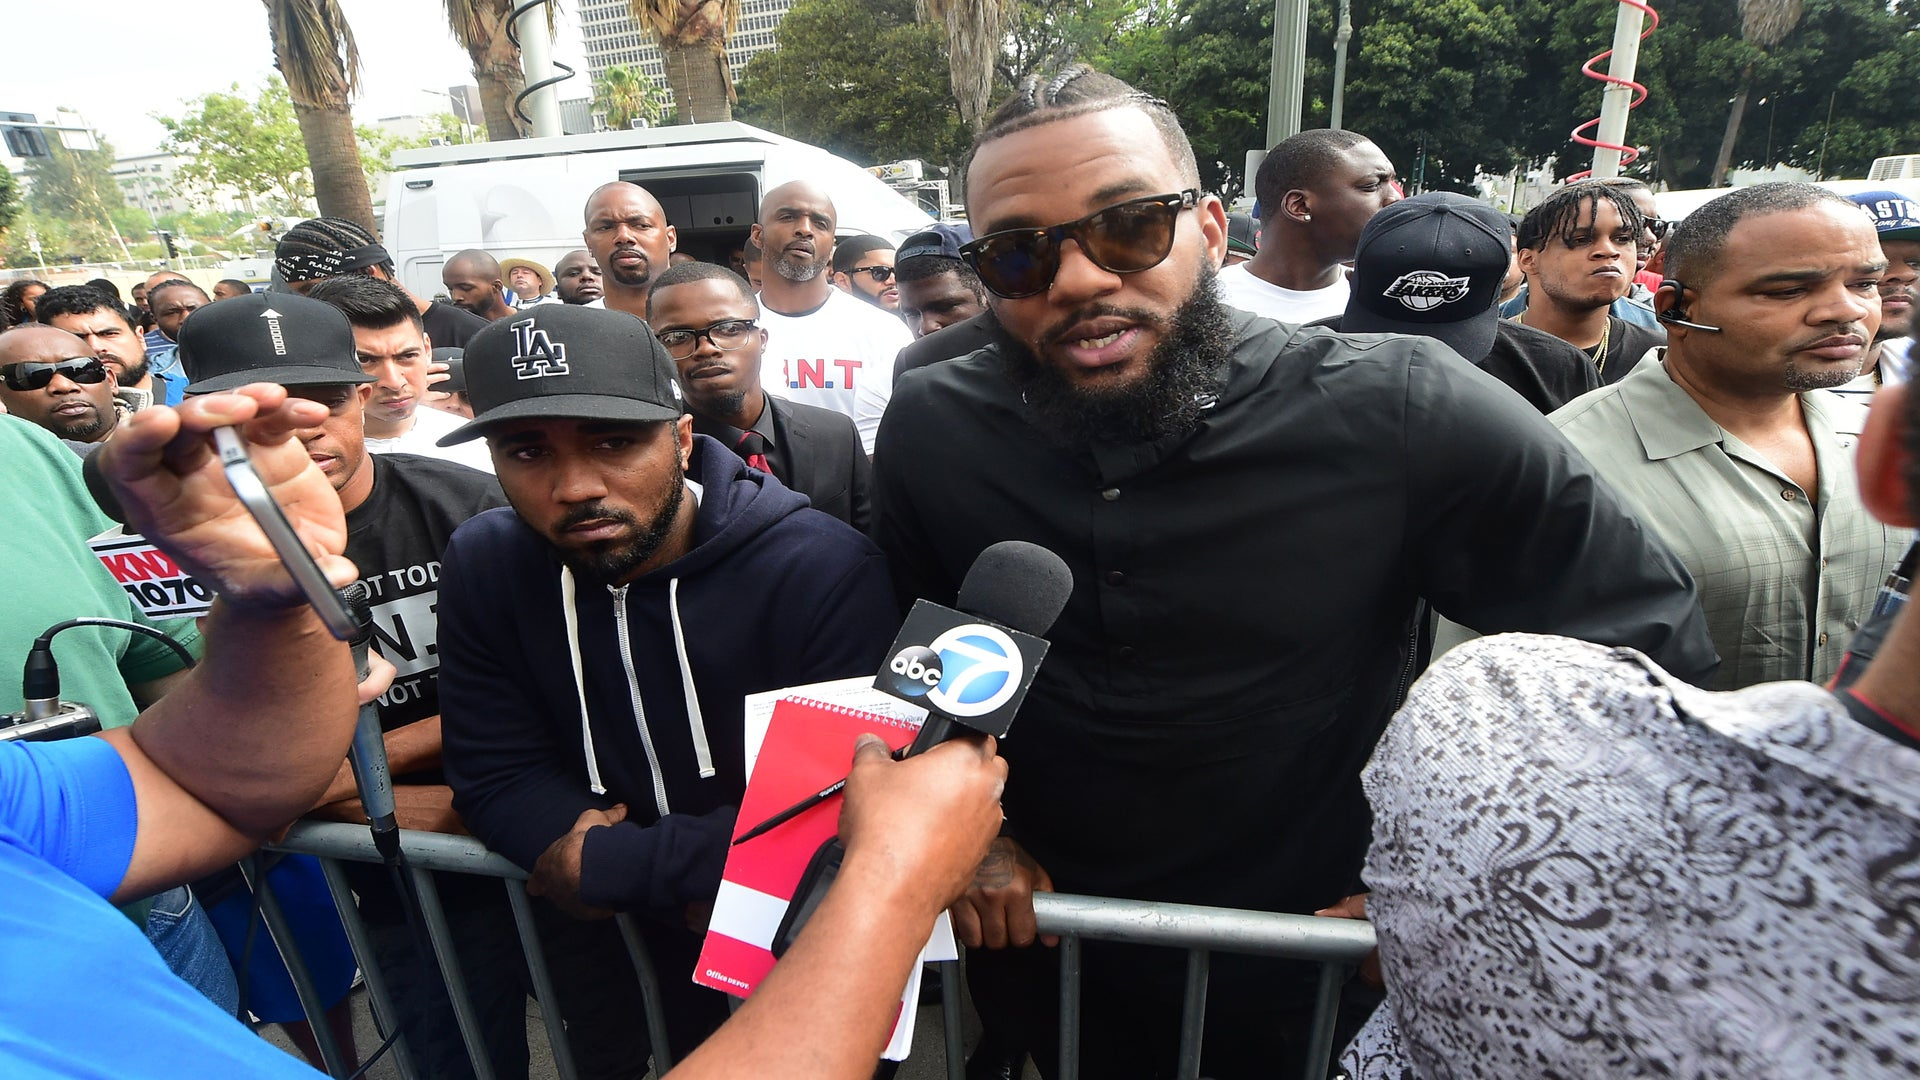 Snoop Dogg and The Game Lead Peaceful All-Male Protest in LA